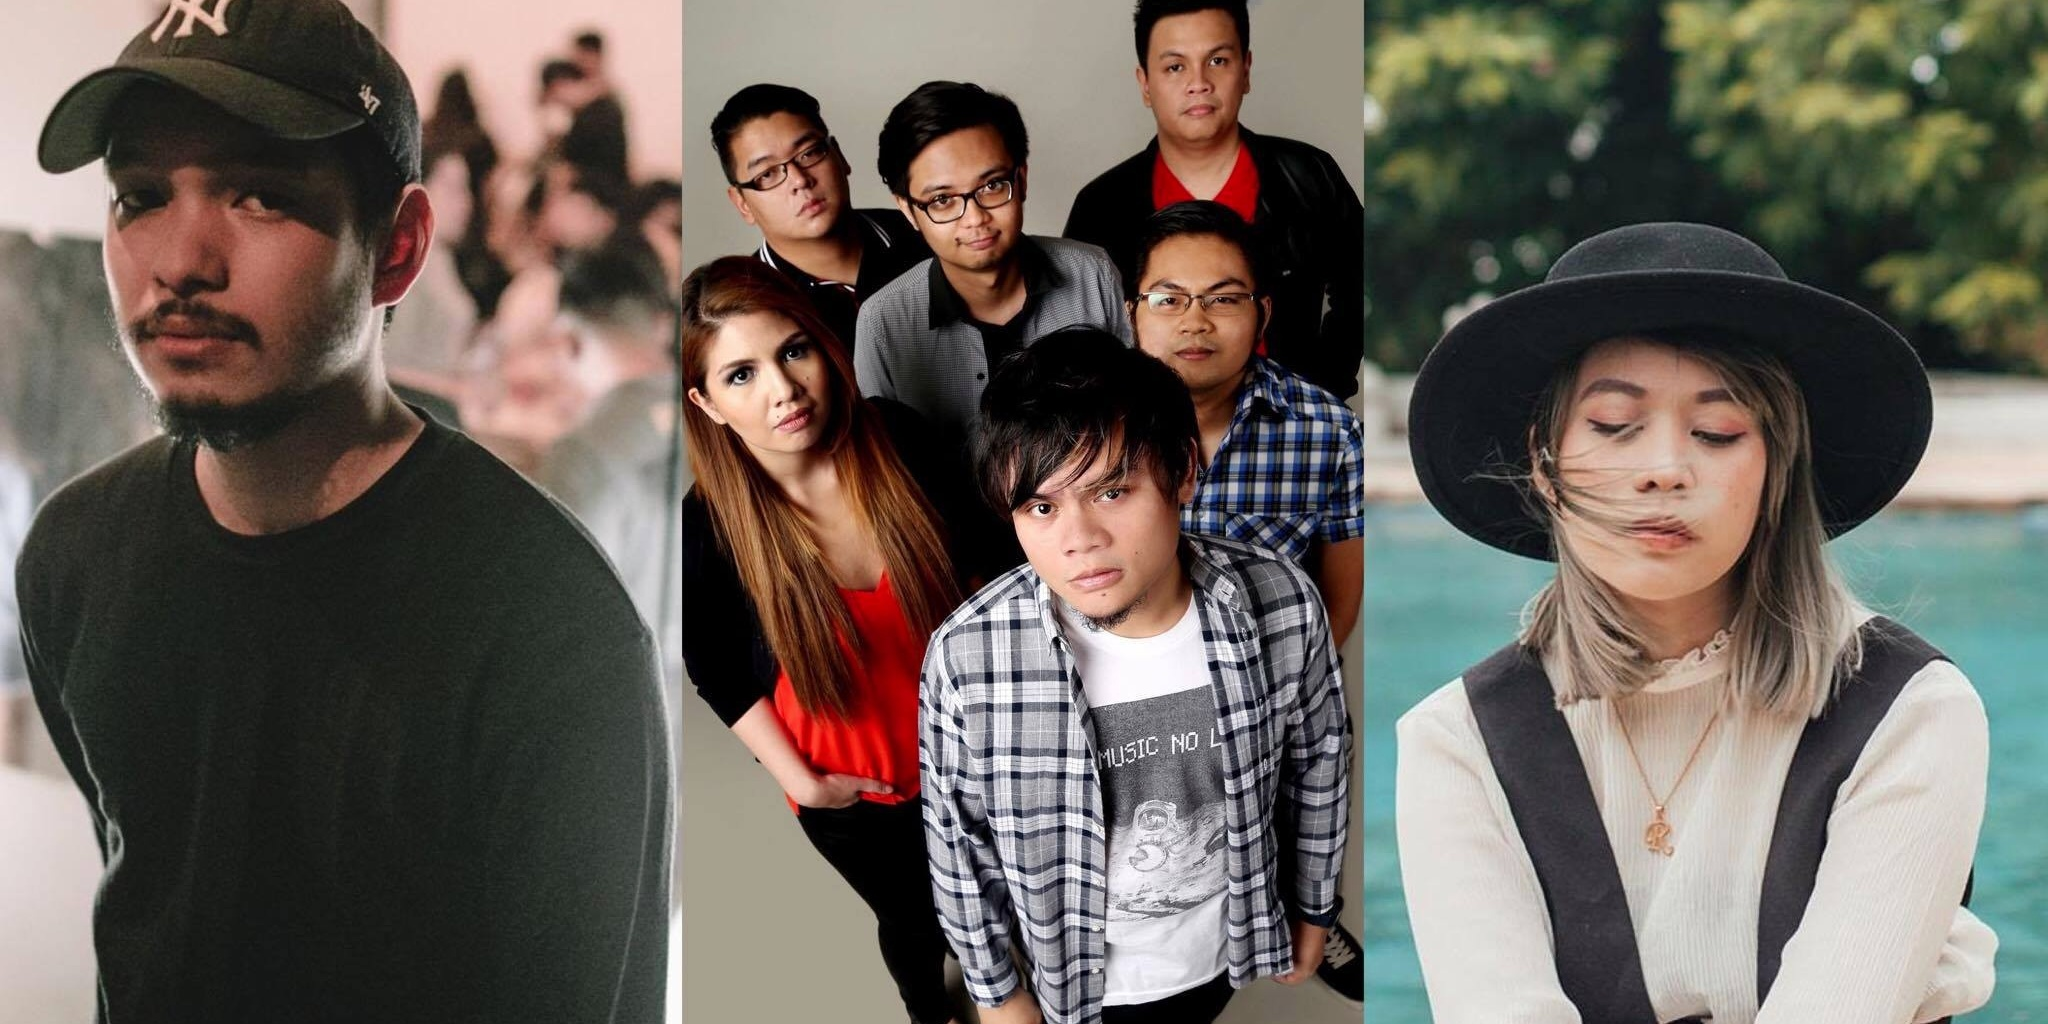 Somedaydream, Autotelic, Reese Lansangan, and more come together for MCA Music's GetMusic Indie-Go